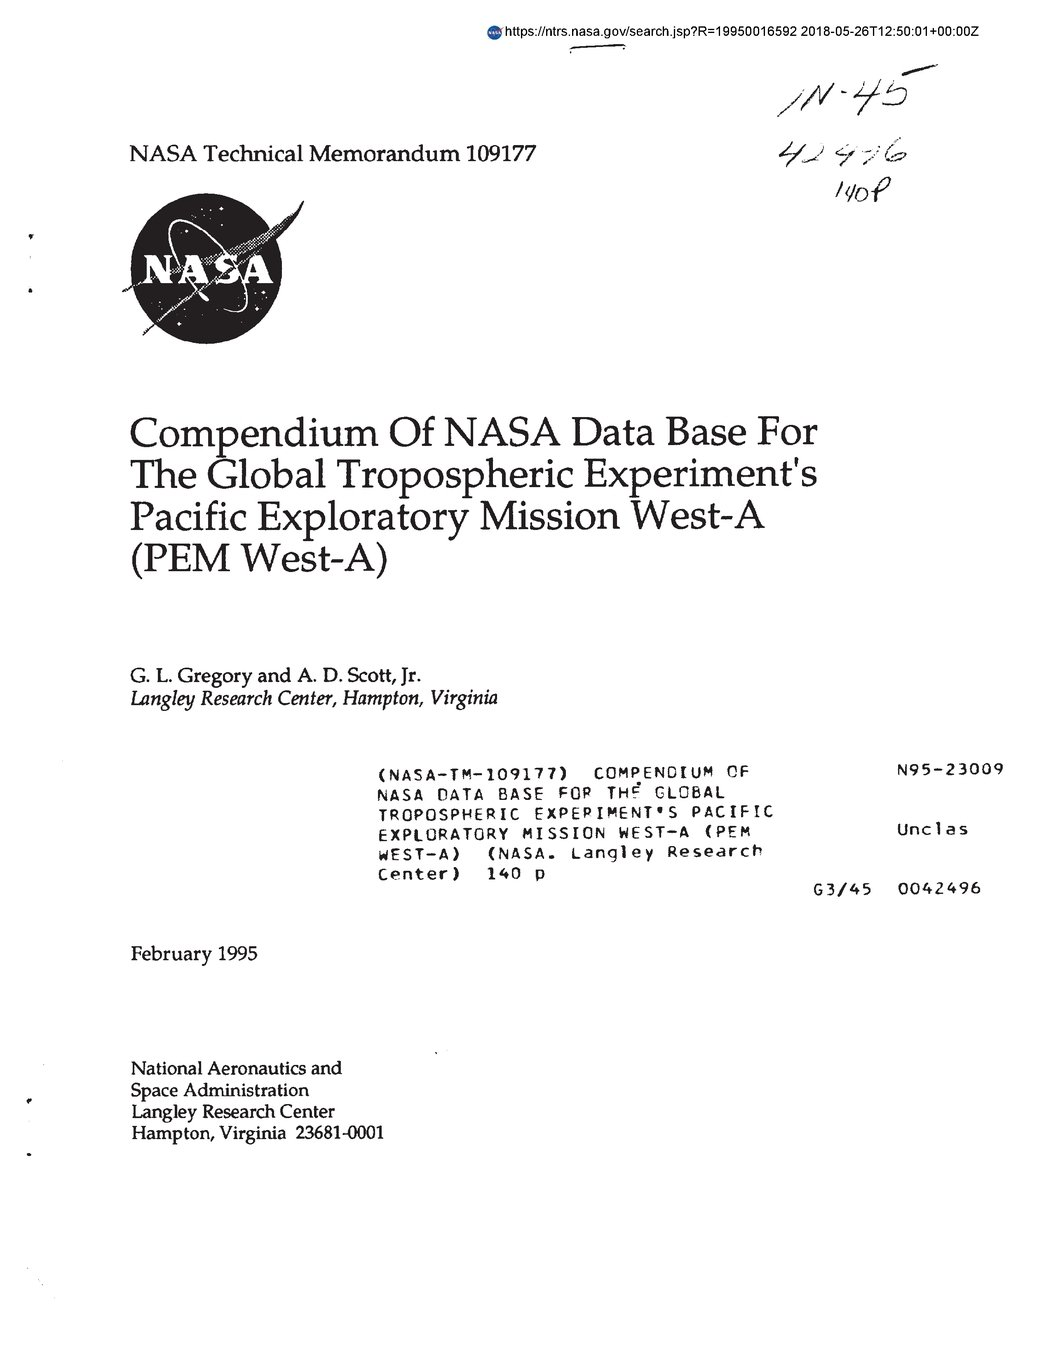 Compendium Of Nasa Data Base For The Global Tropospheric